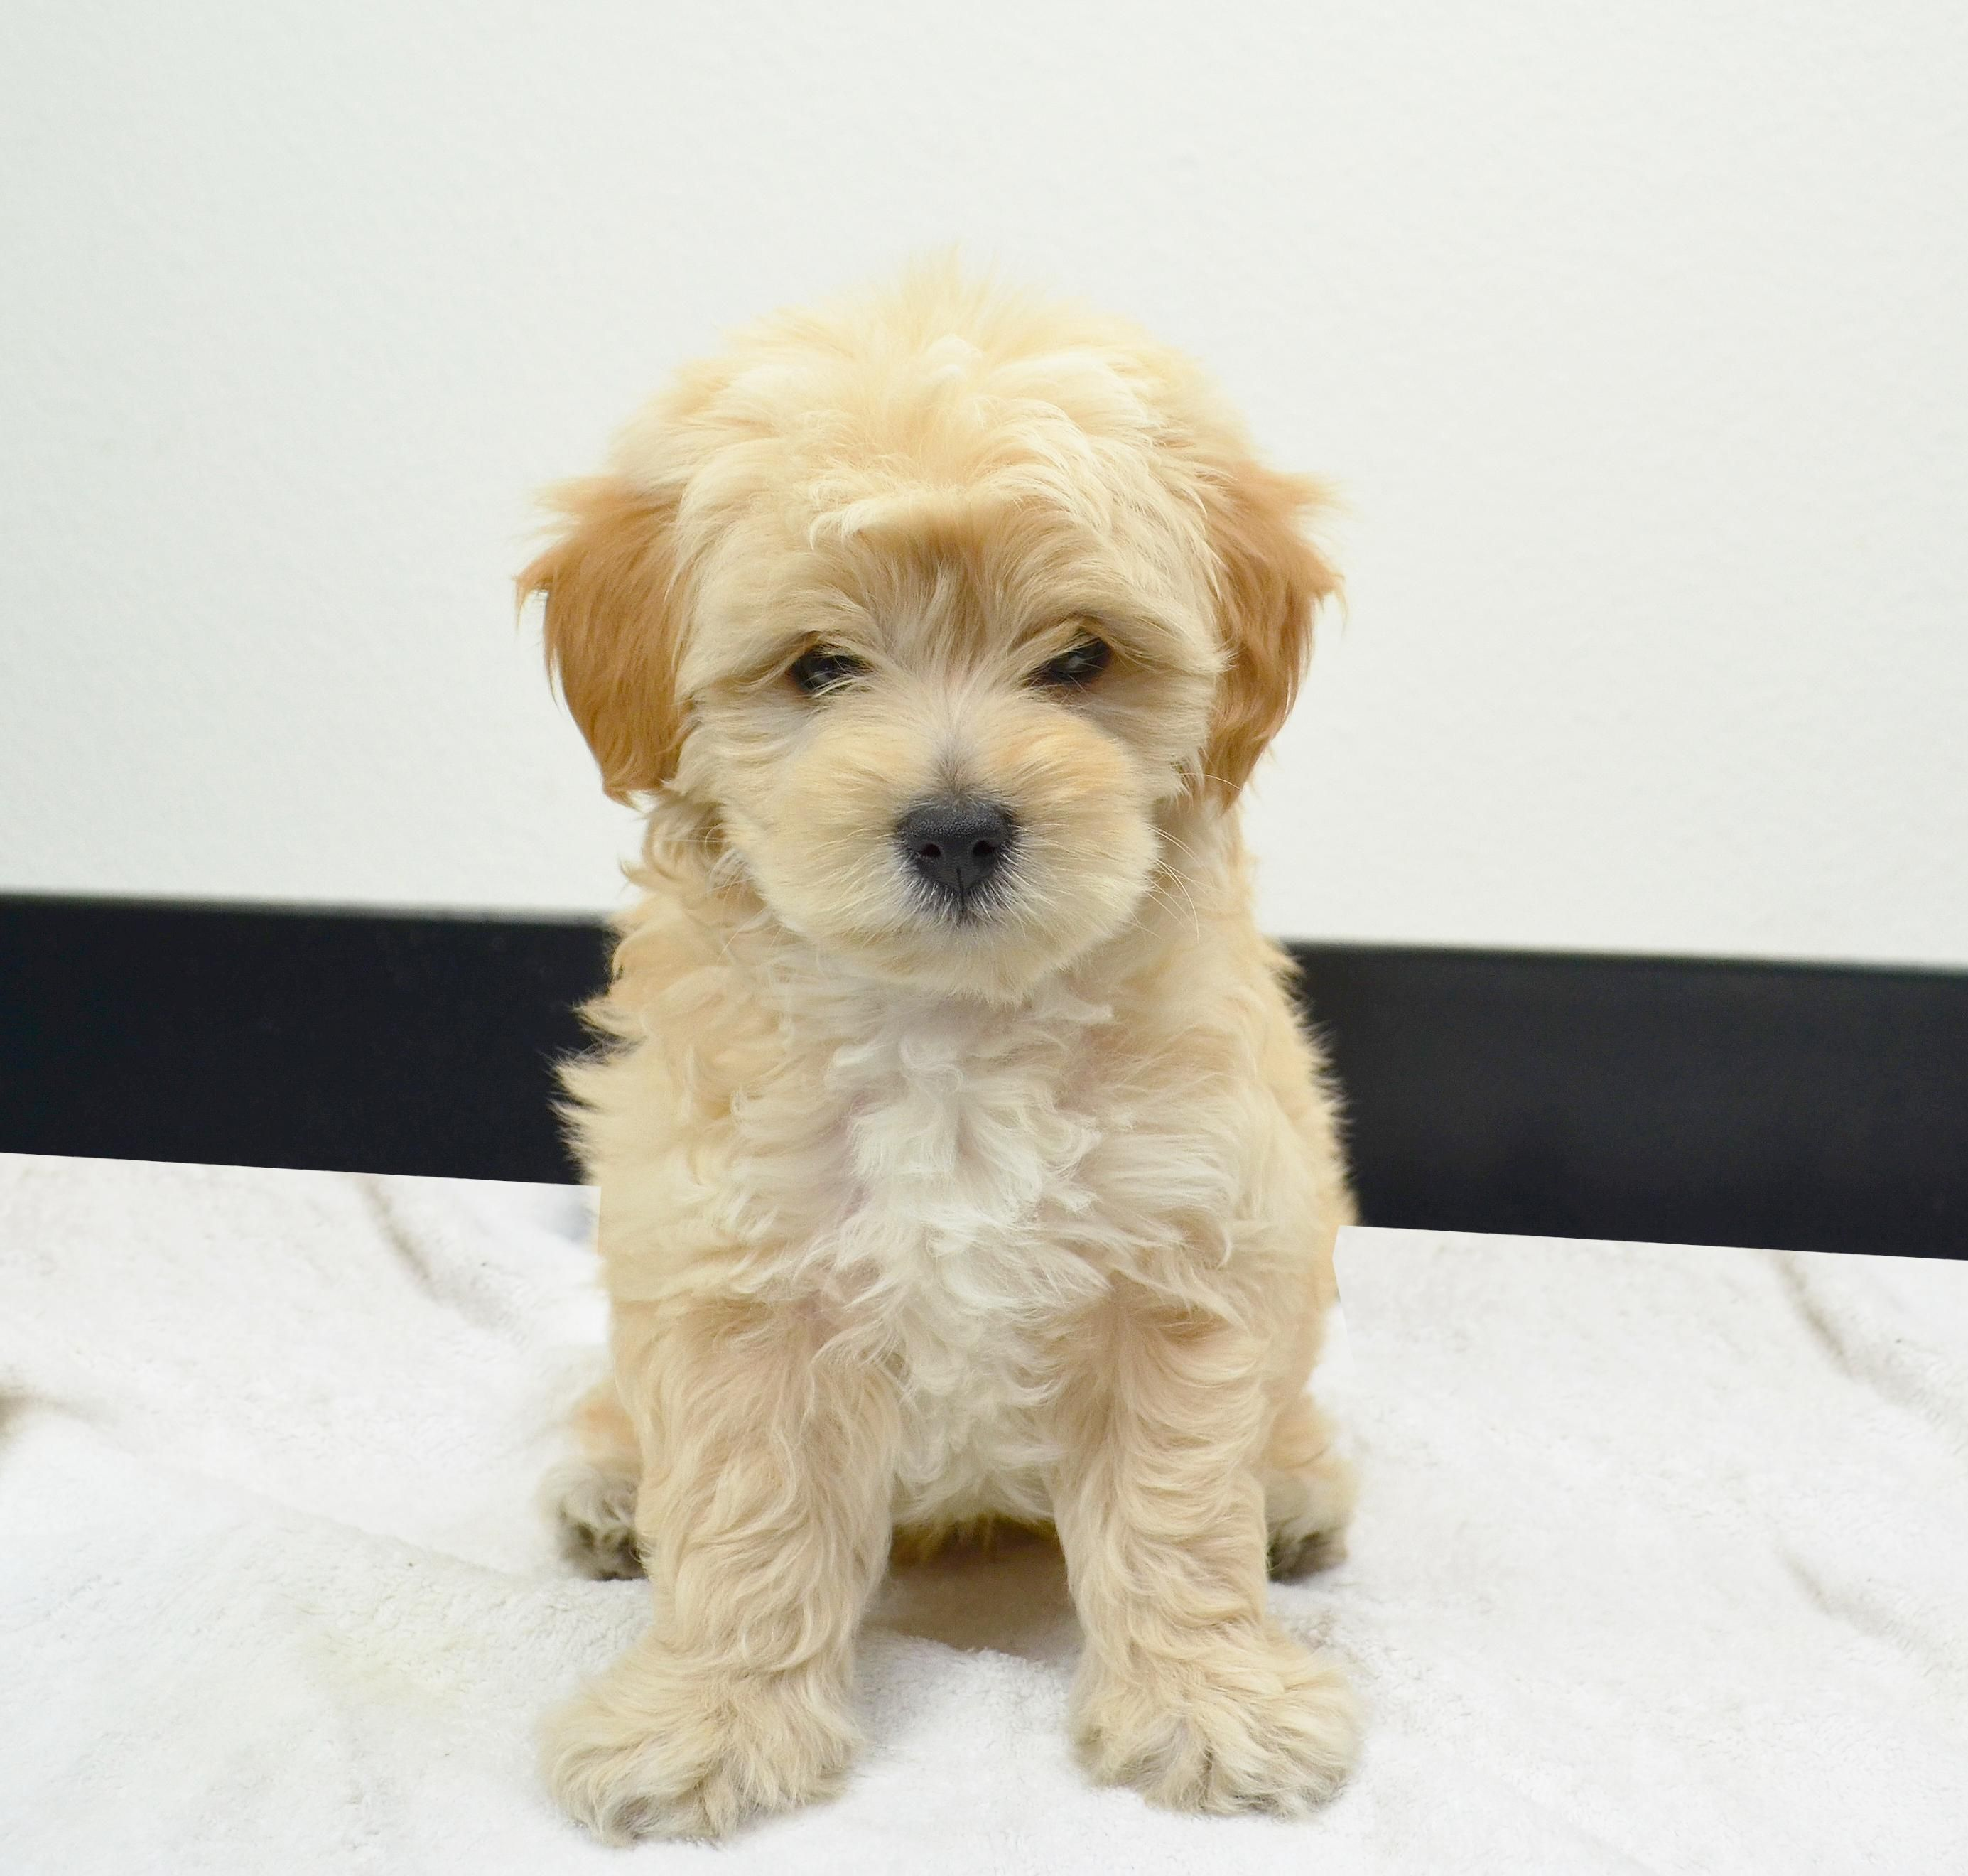 My New Maltipoo He Looks Like A Mini Golden Retriever Puppy But 1 4 Of The Size Https Ift Tt 2lnp3kz C Maltipoo Mini Golden Retriever Golden Retriever Puppy